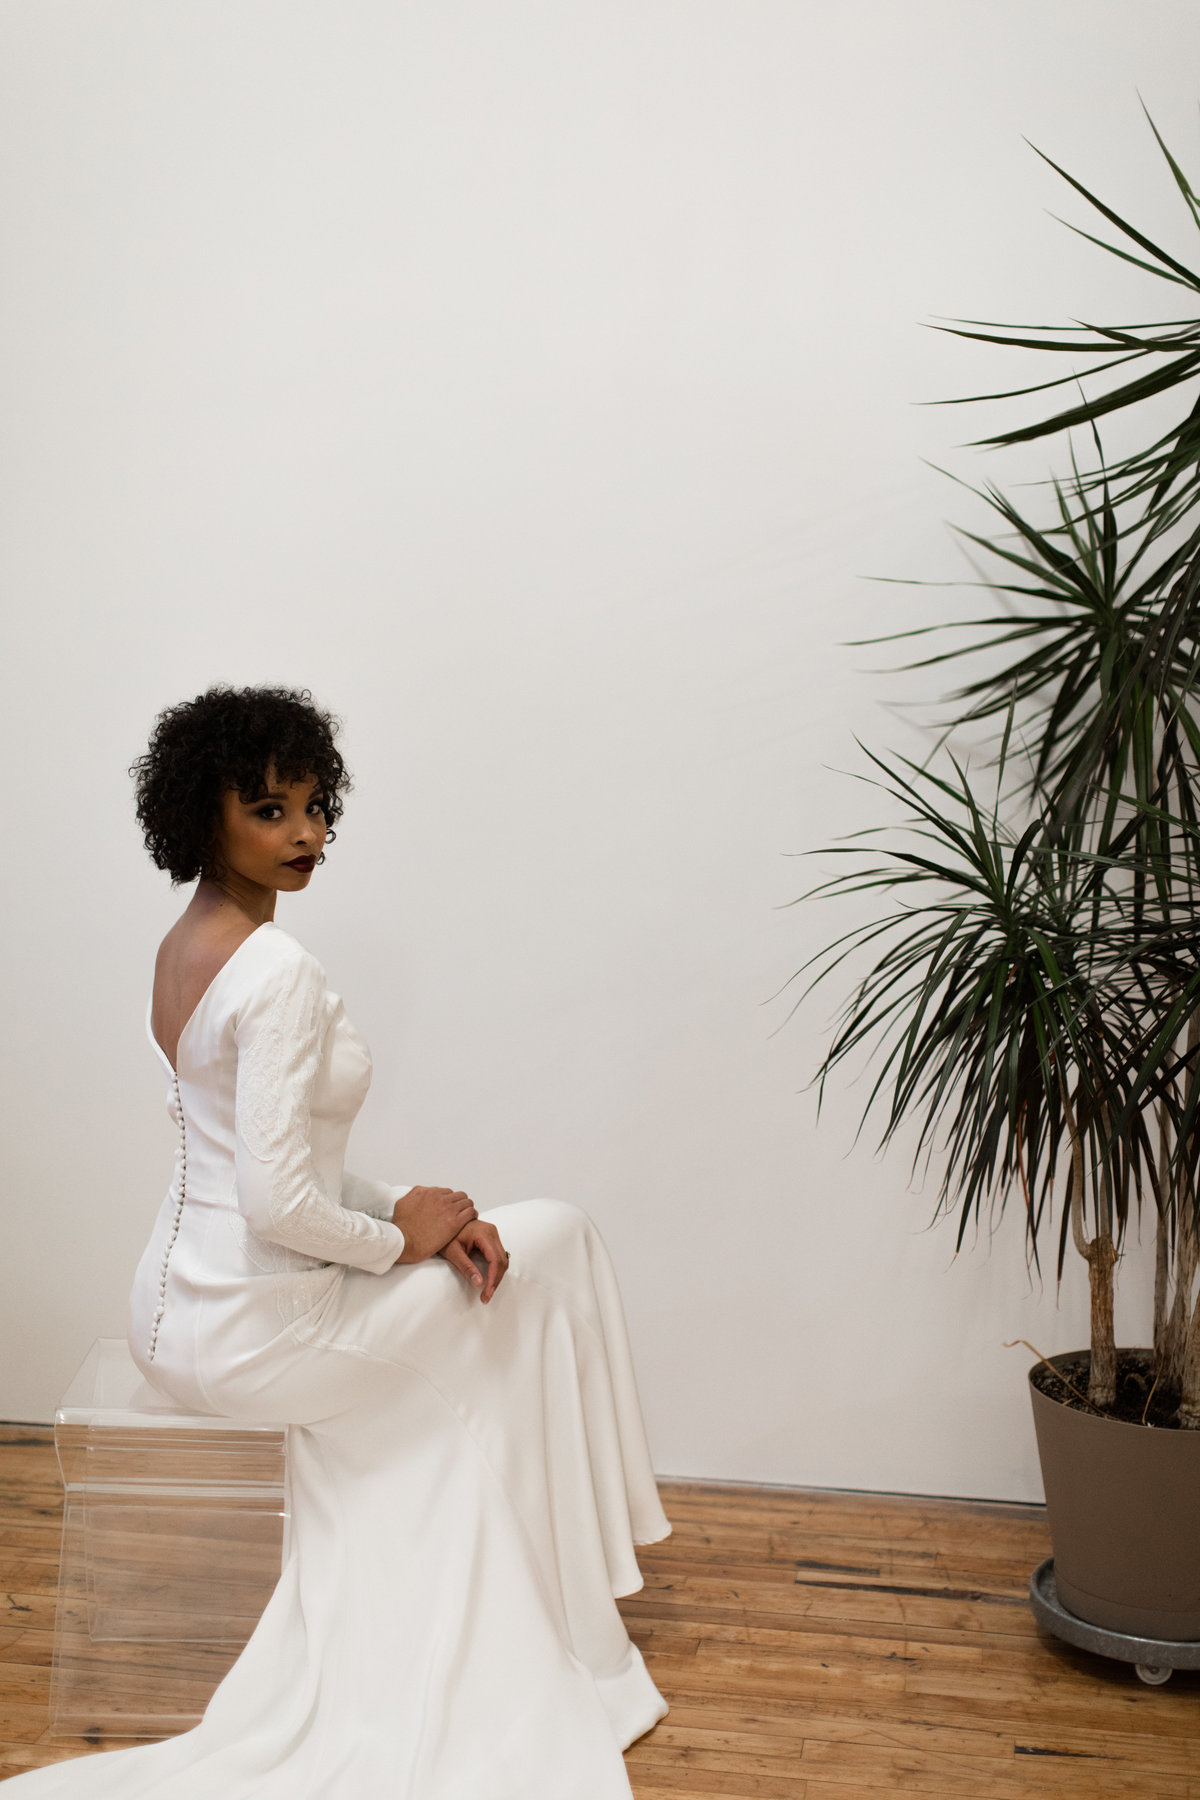 Modehaus_Wedding_studio_shoot_model_in_longsleeve_dress